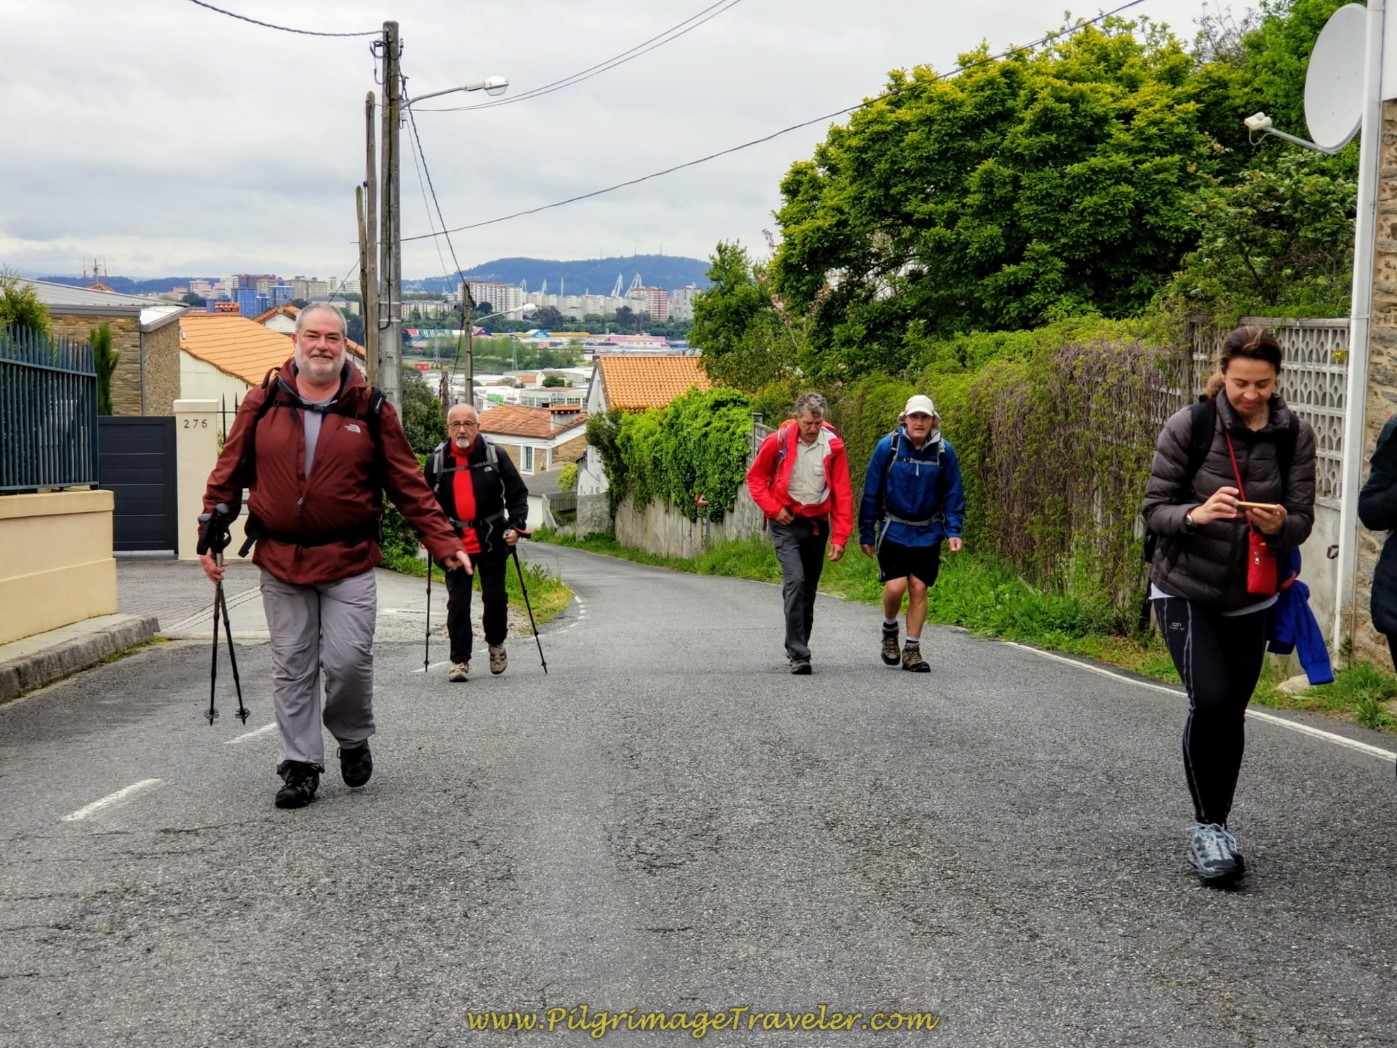 Pilgrims on the Steep Climb Up the Camiño do Vilar Street on day one of the Camino Inglés